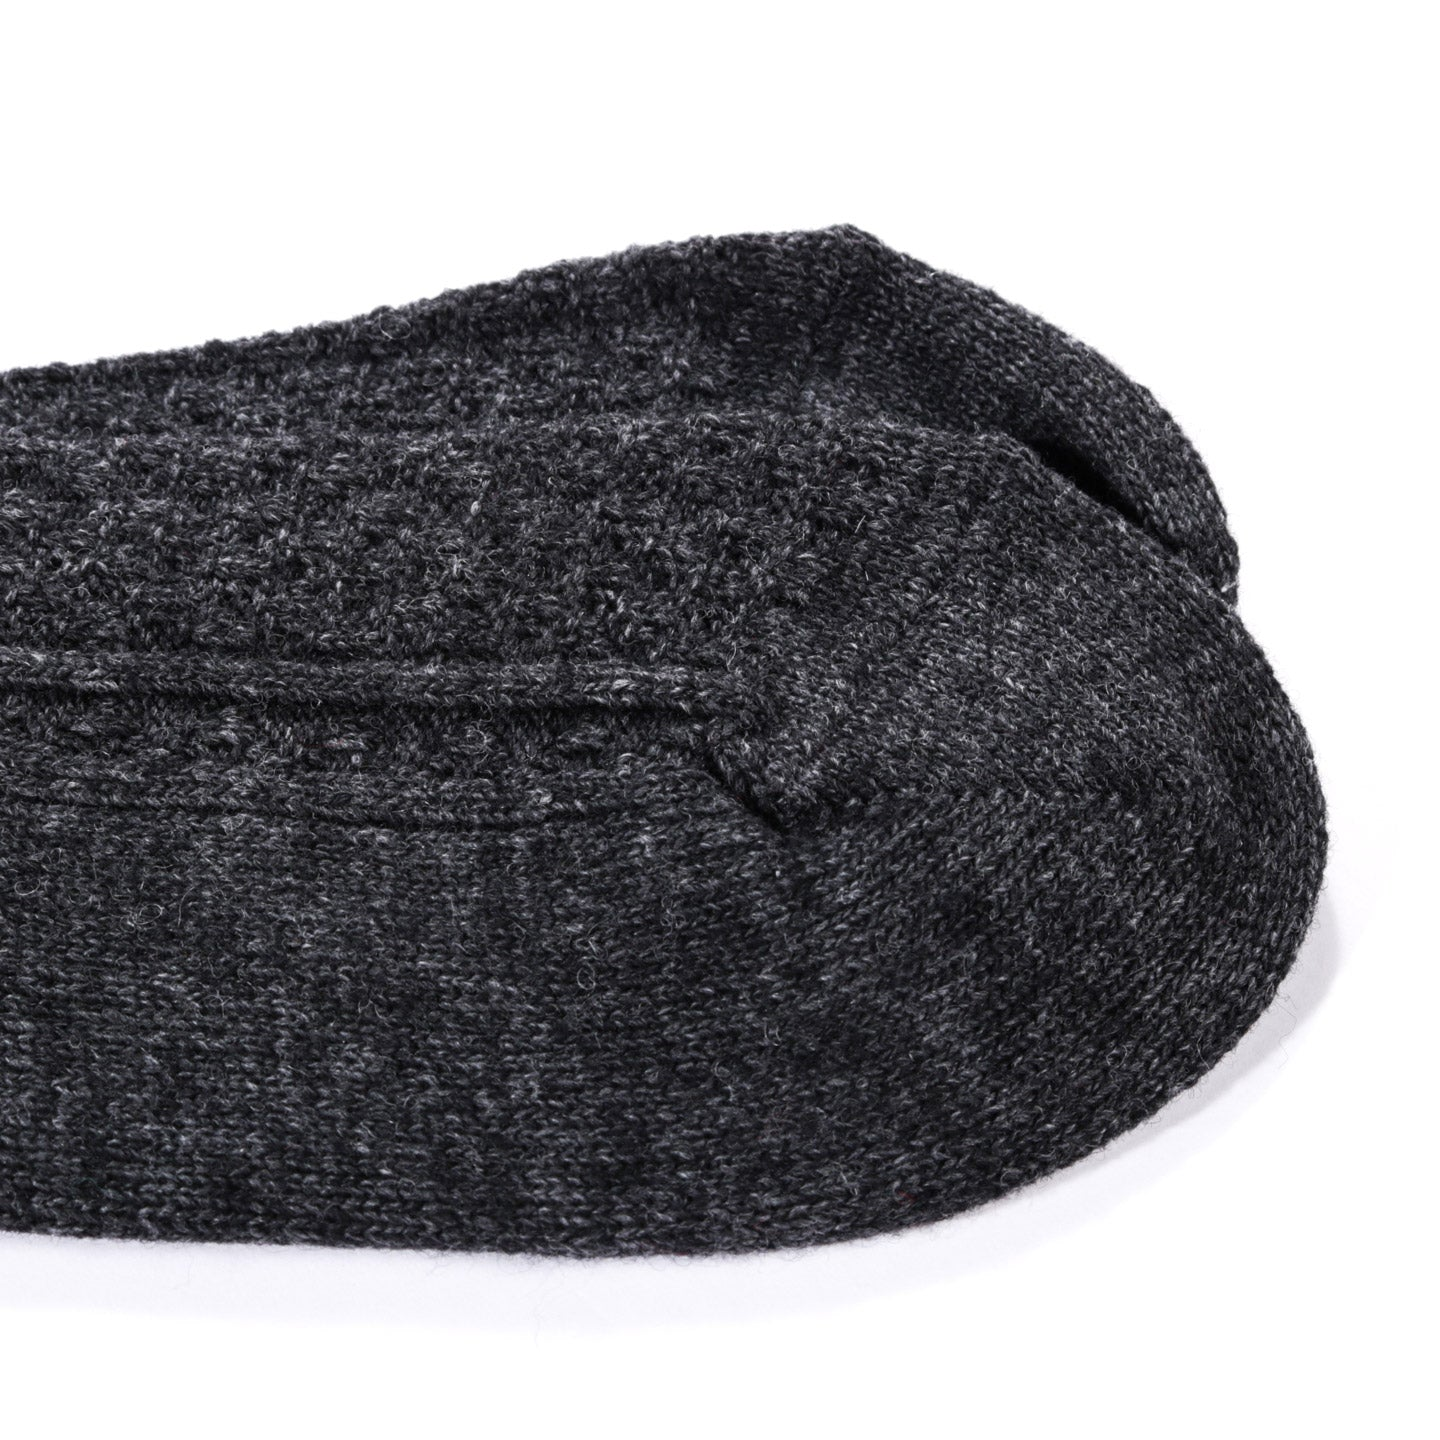 ANONYMOUS ISM WOOL CASHMERE LINKS CREW SOCK CHARCOAL